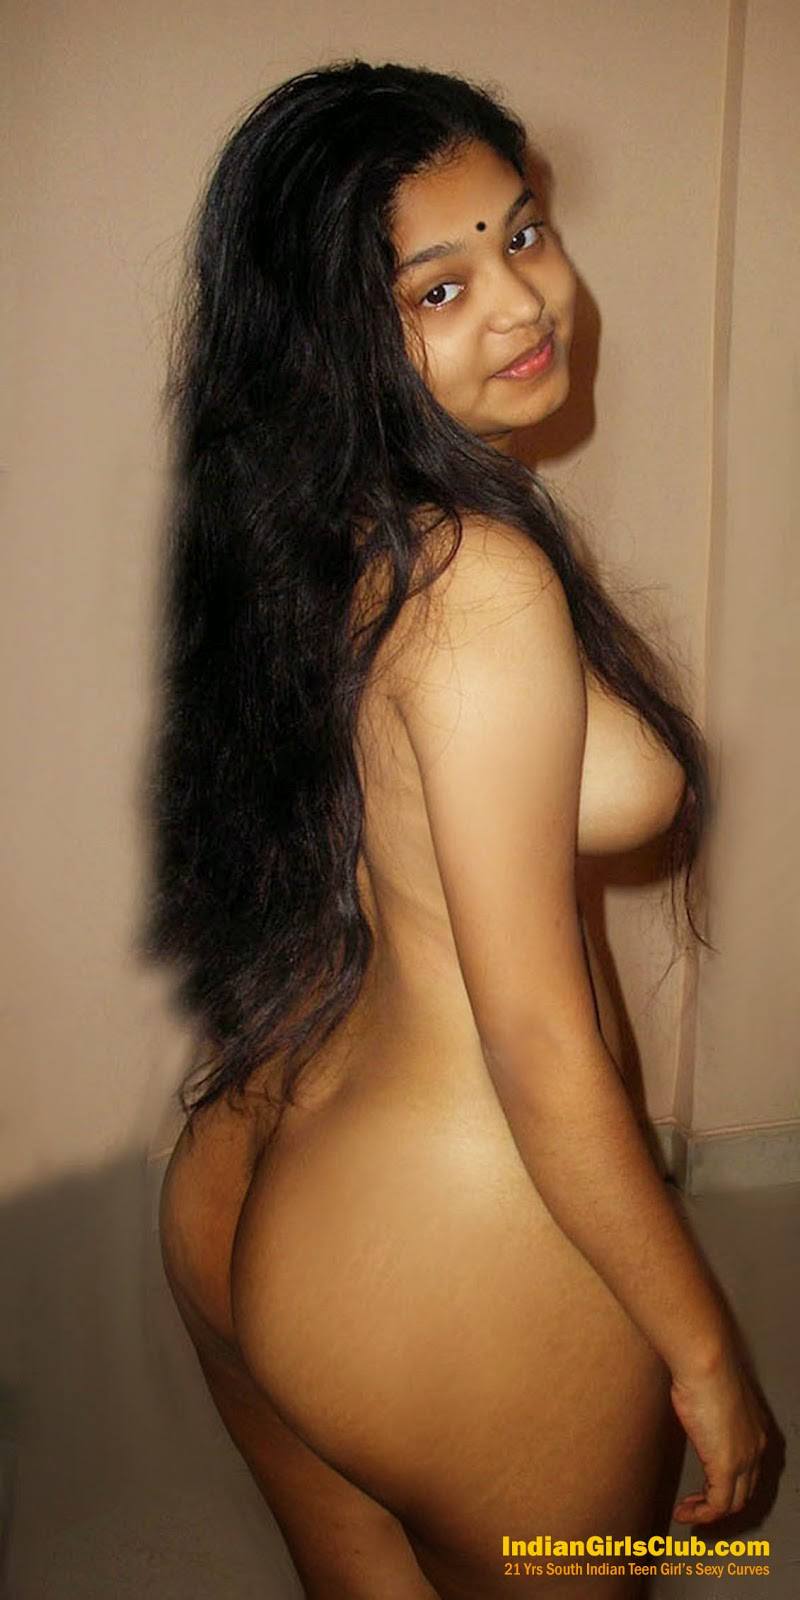 Indian Lady Sexy Photo